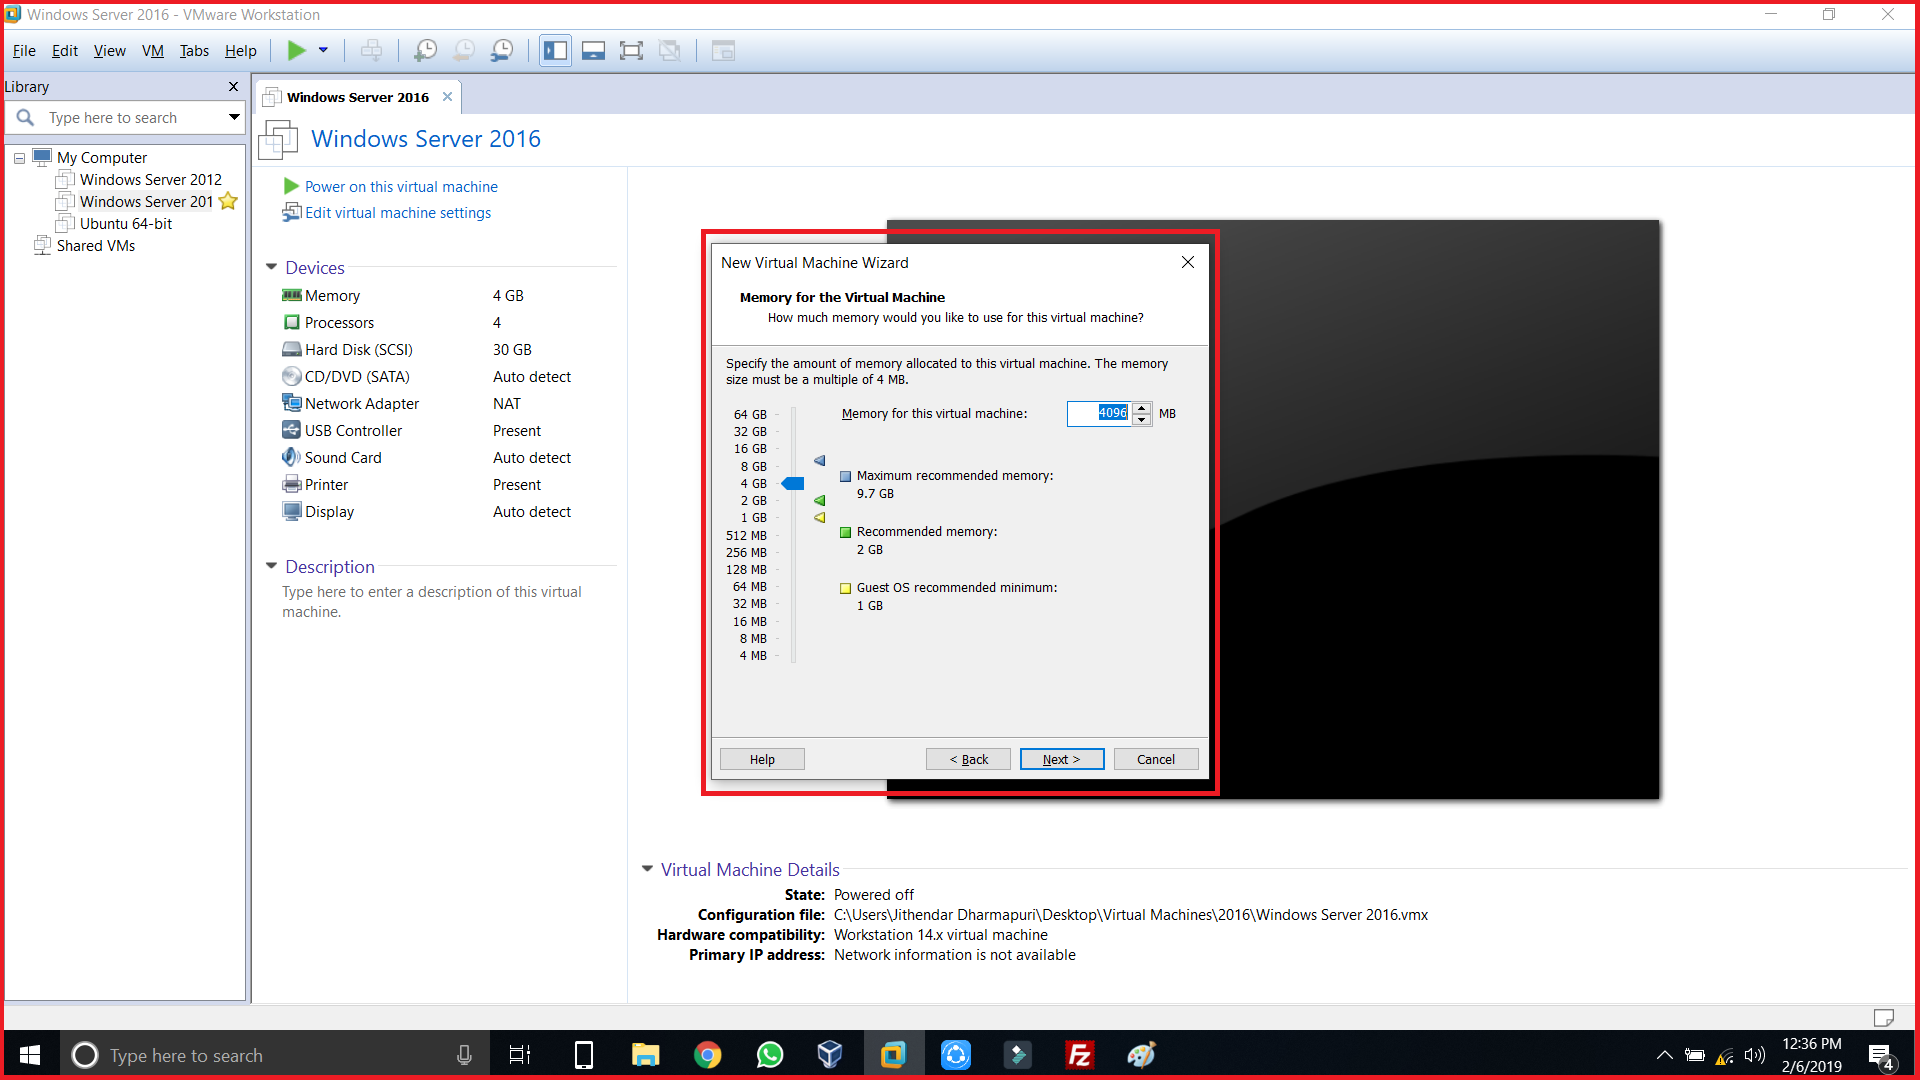 Adjust the memory size of the Virtual Machine 1GB to 64GB